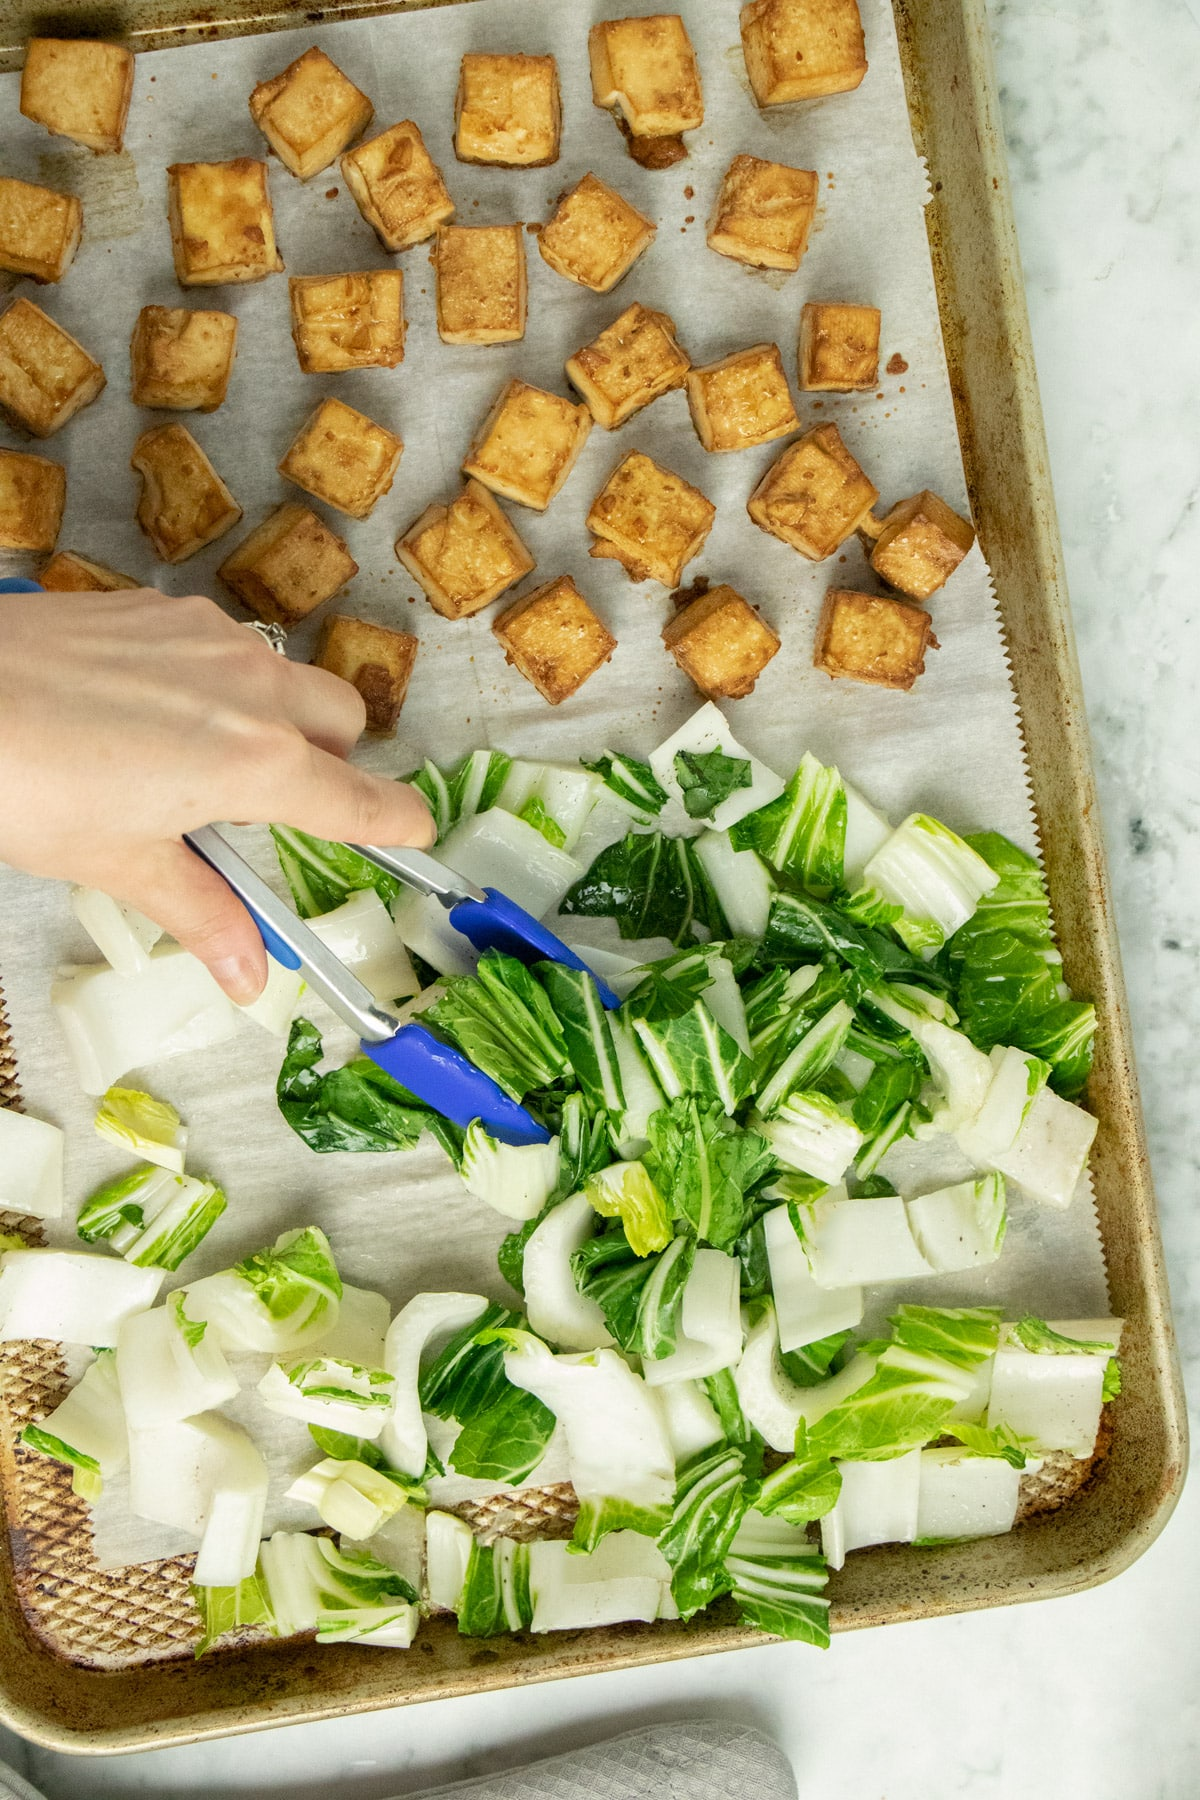 hand using blue tongs to stir the bok choy on a baking sheet next to tofu cubes